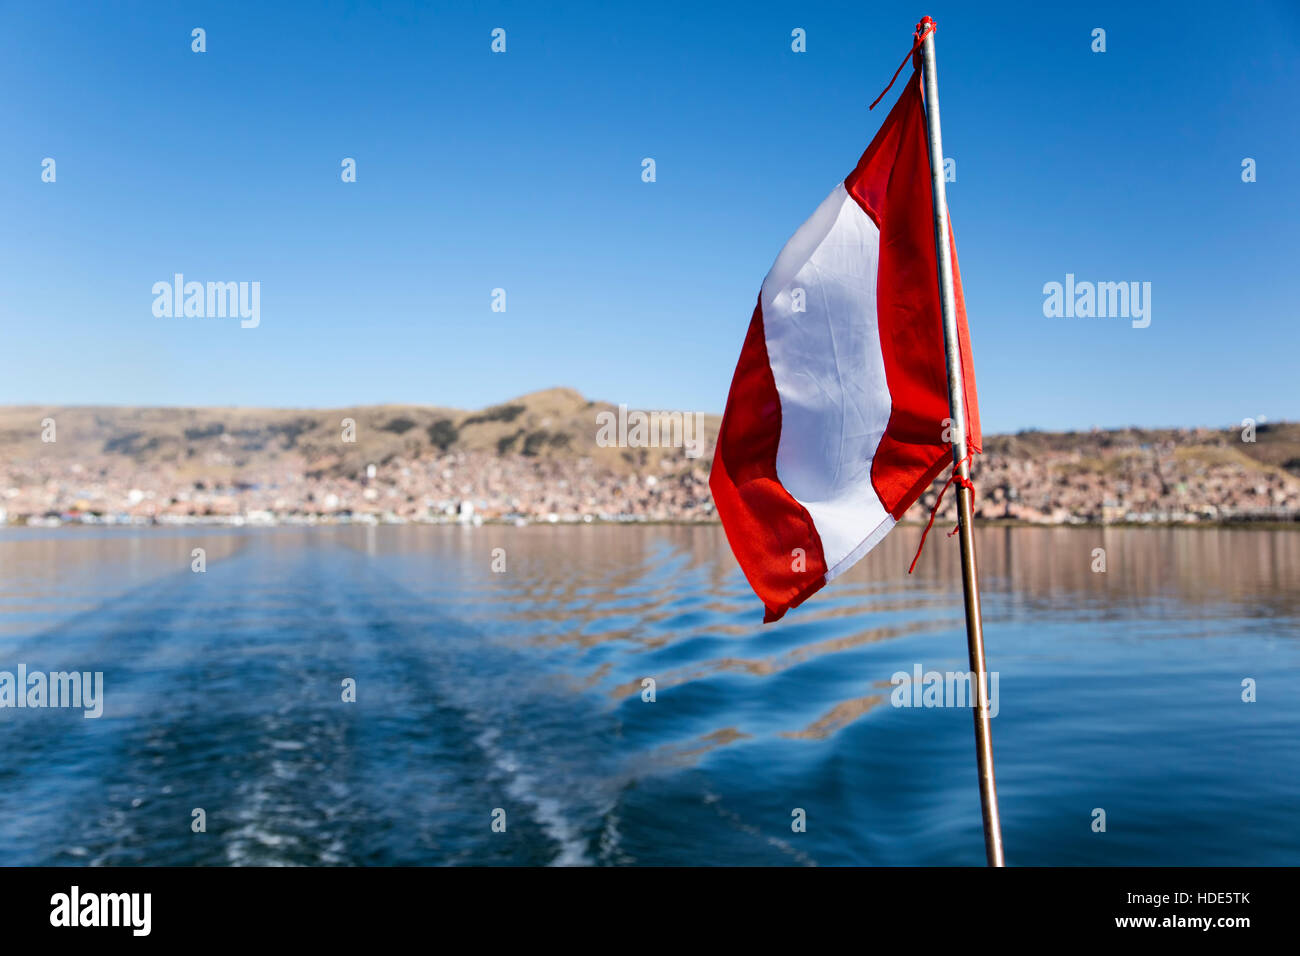 Peruvian flag on tourist boat on Lake Titicaca, City of Puno in background, Puno, Peru - Stock Image